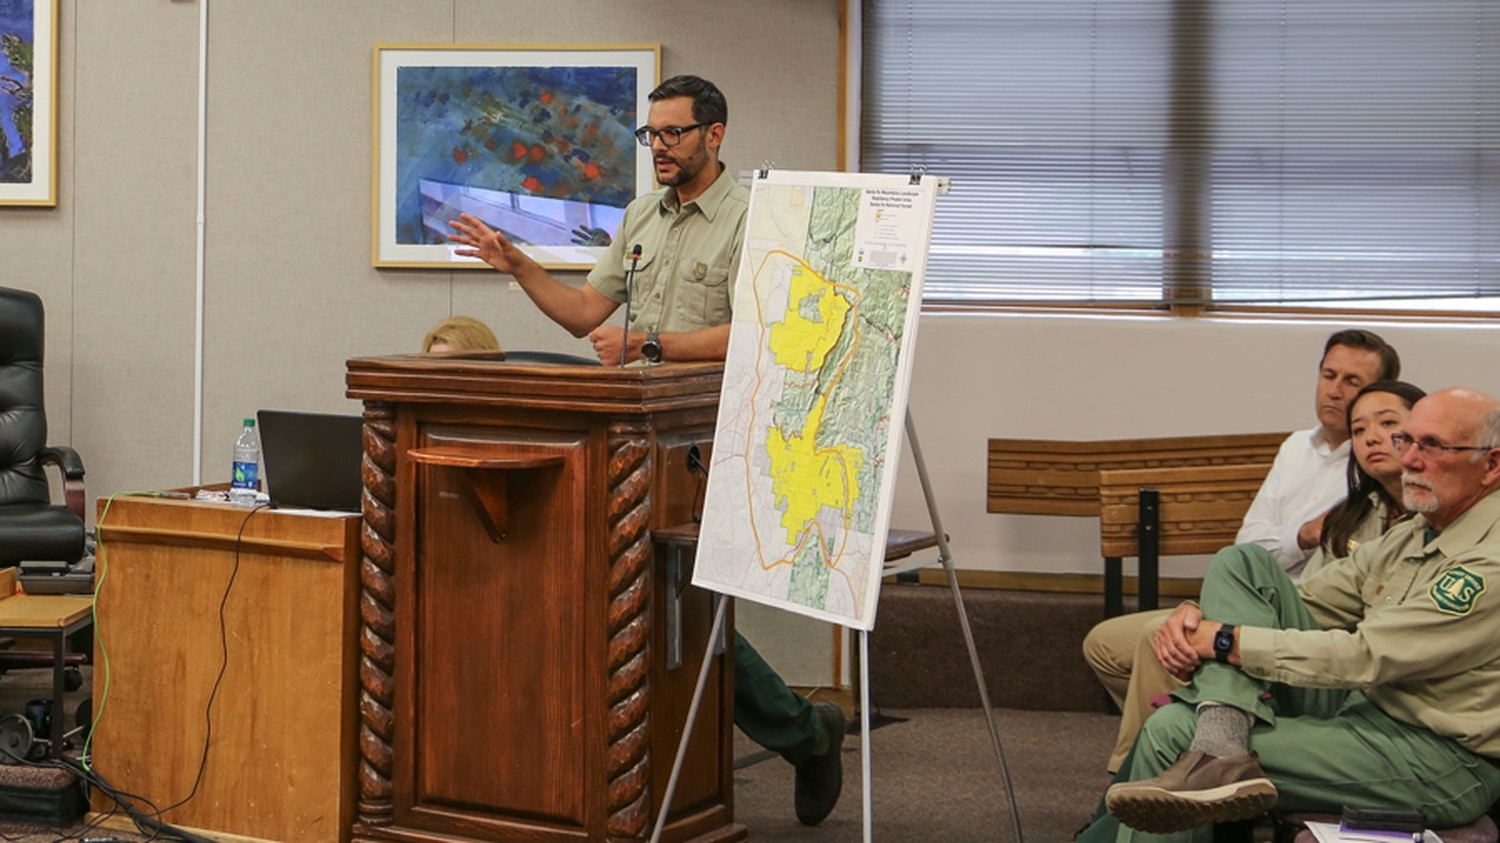 Forest Service Supervisor James Melonas explains proposed resiliency project.